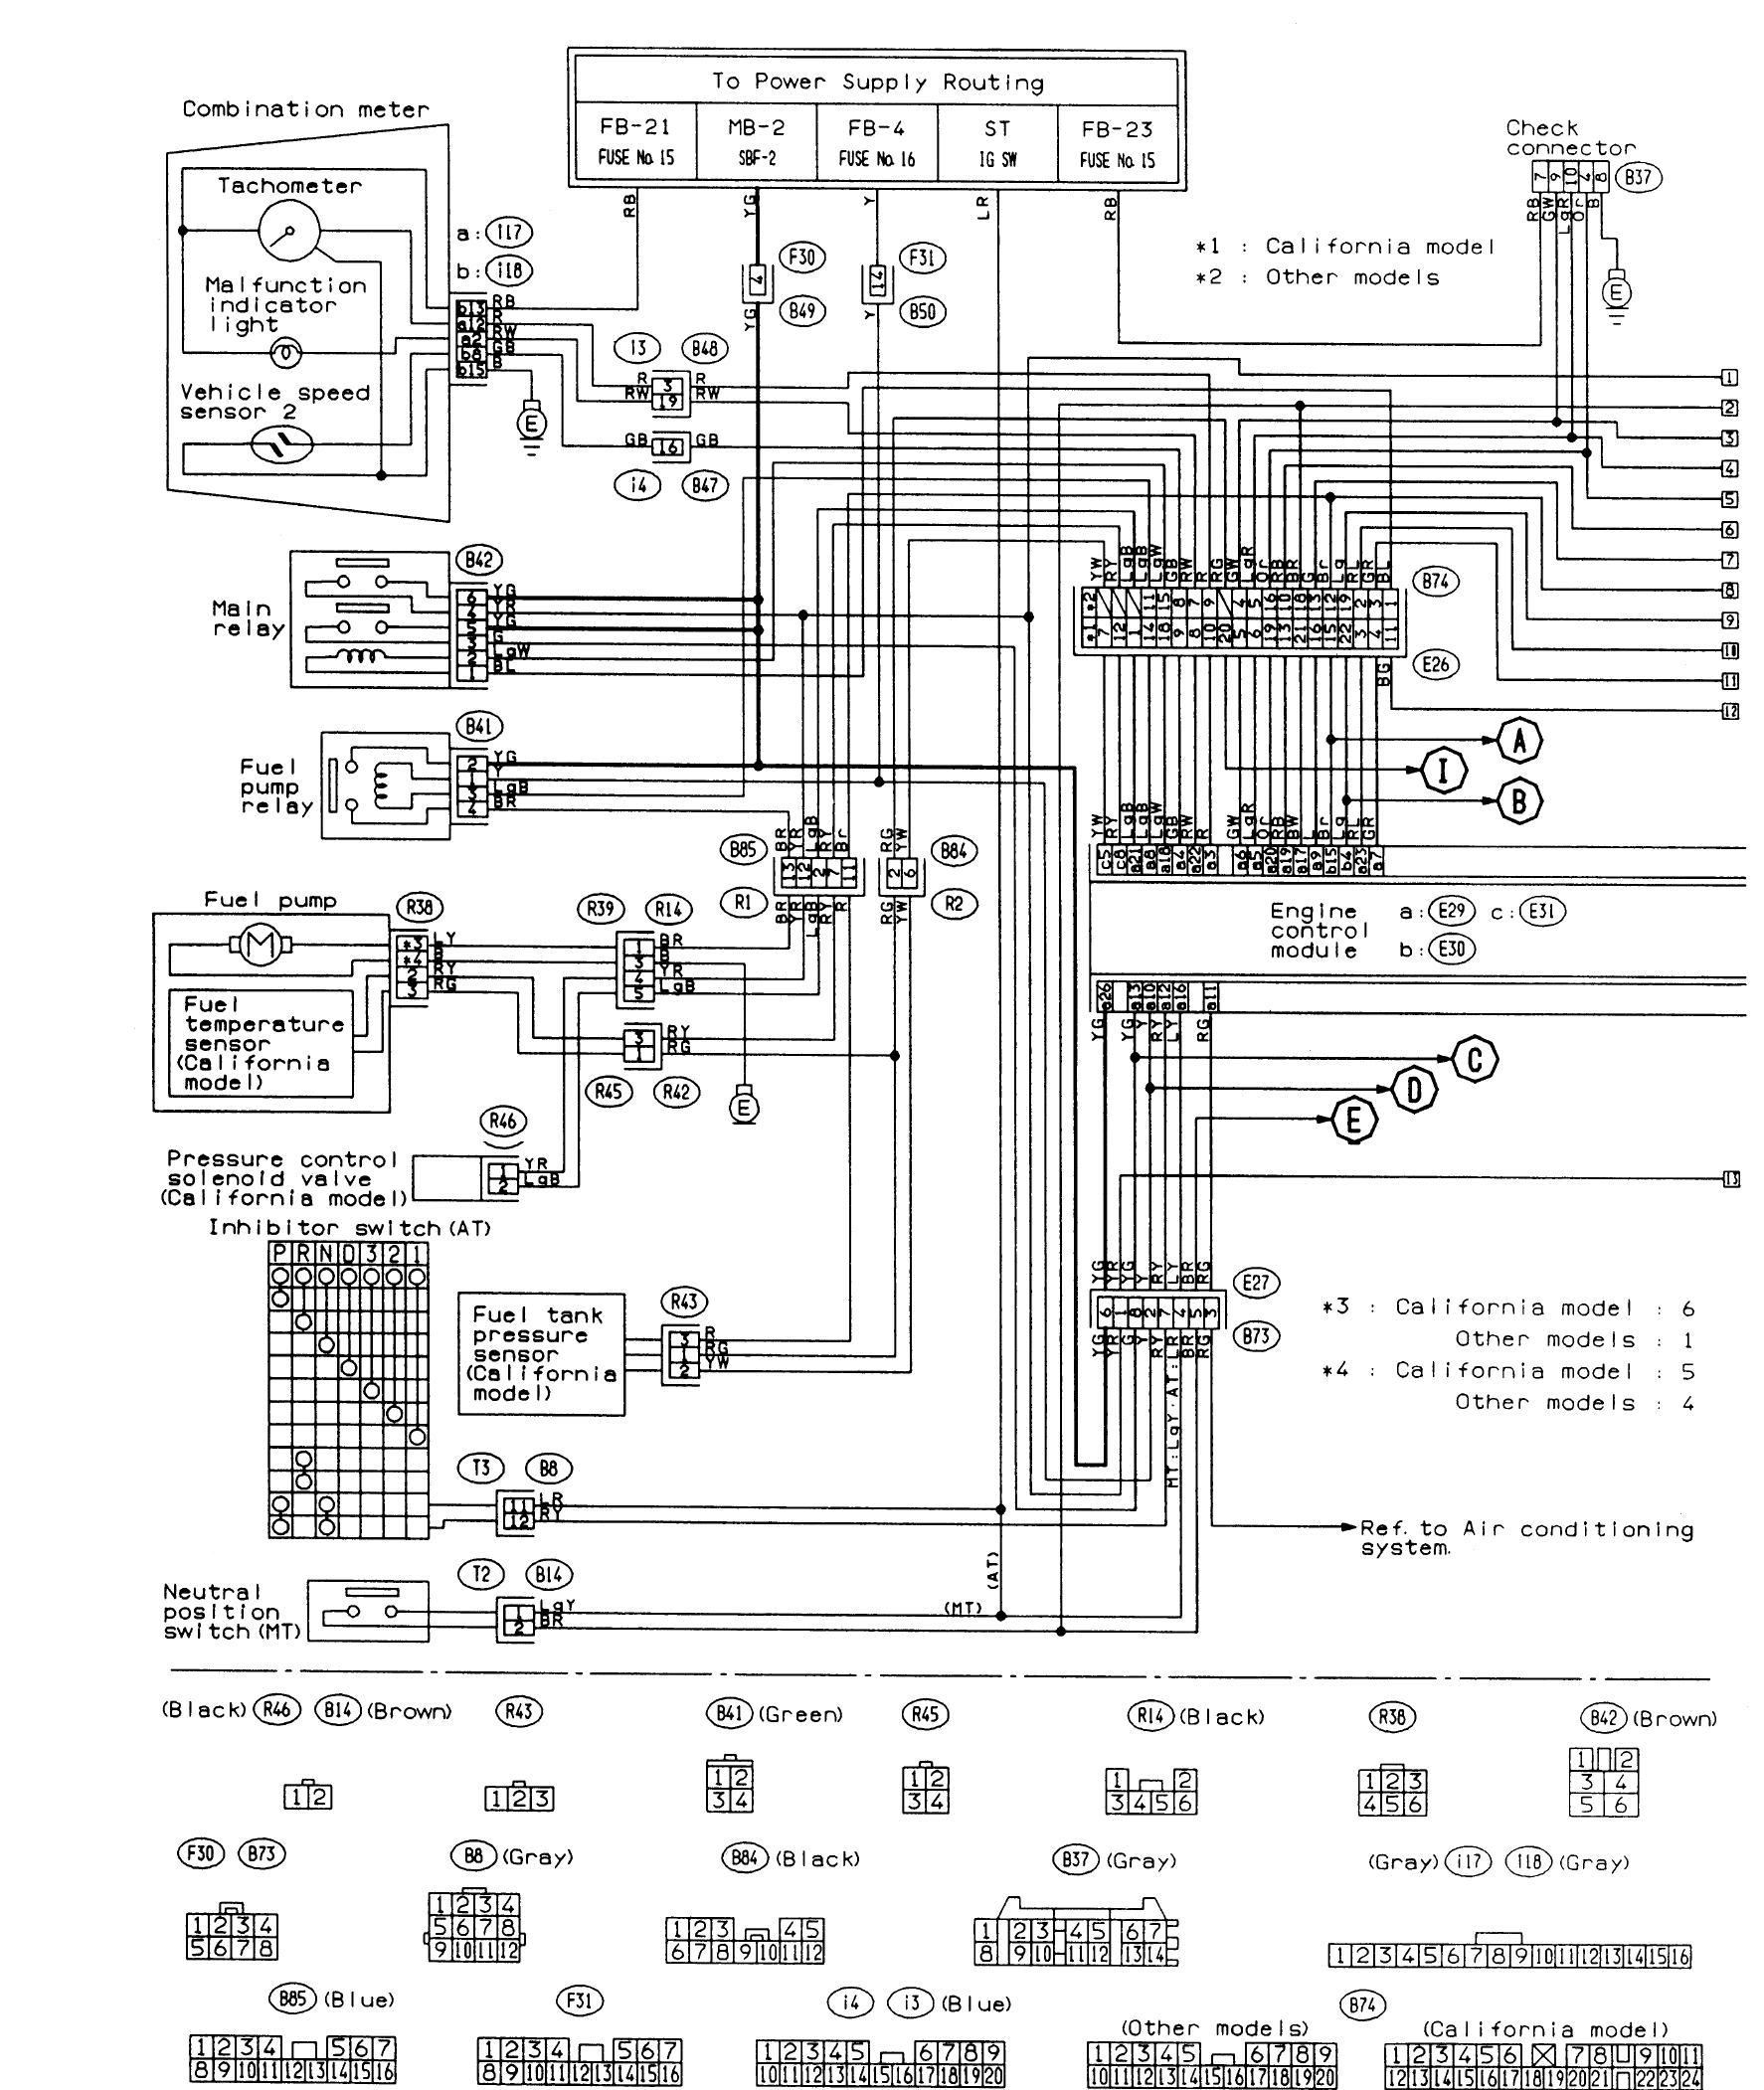 subaru ecu wiring diagram FUSlrCX 1995 impreza wiring diagram on 1995 download wirning diagrams 2015 wrx stereo wiring diagram at mifinder.co